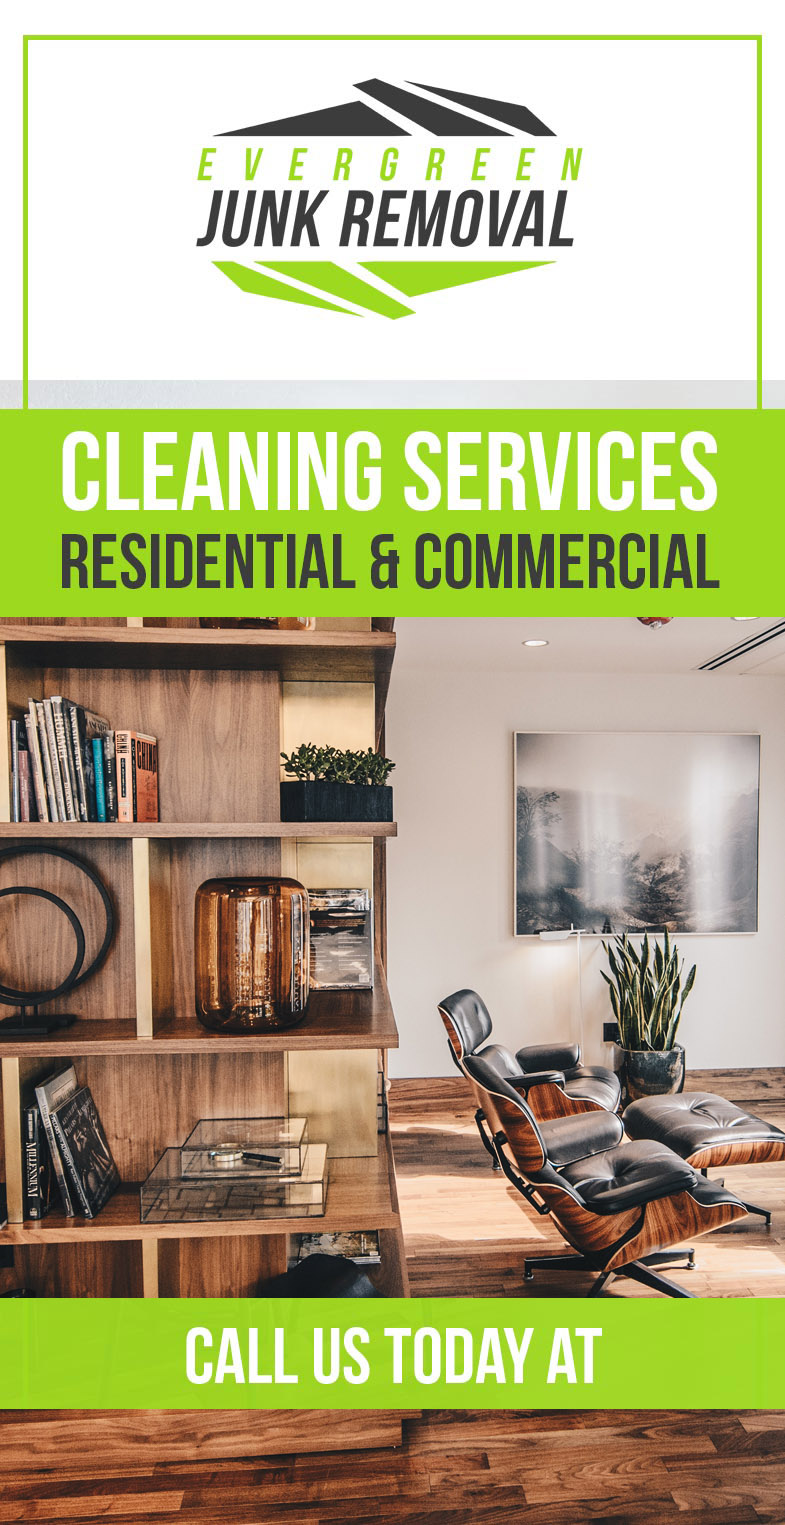 Office Cleaning Services Wilton Manors FL